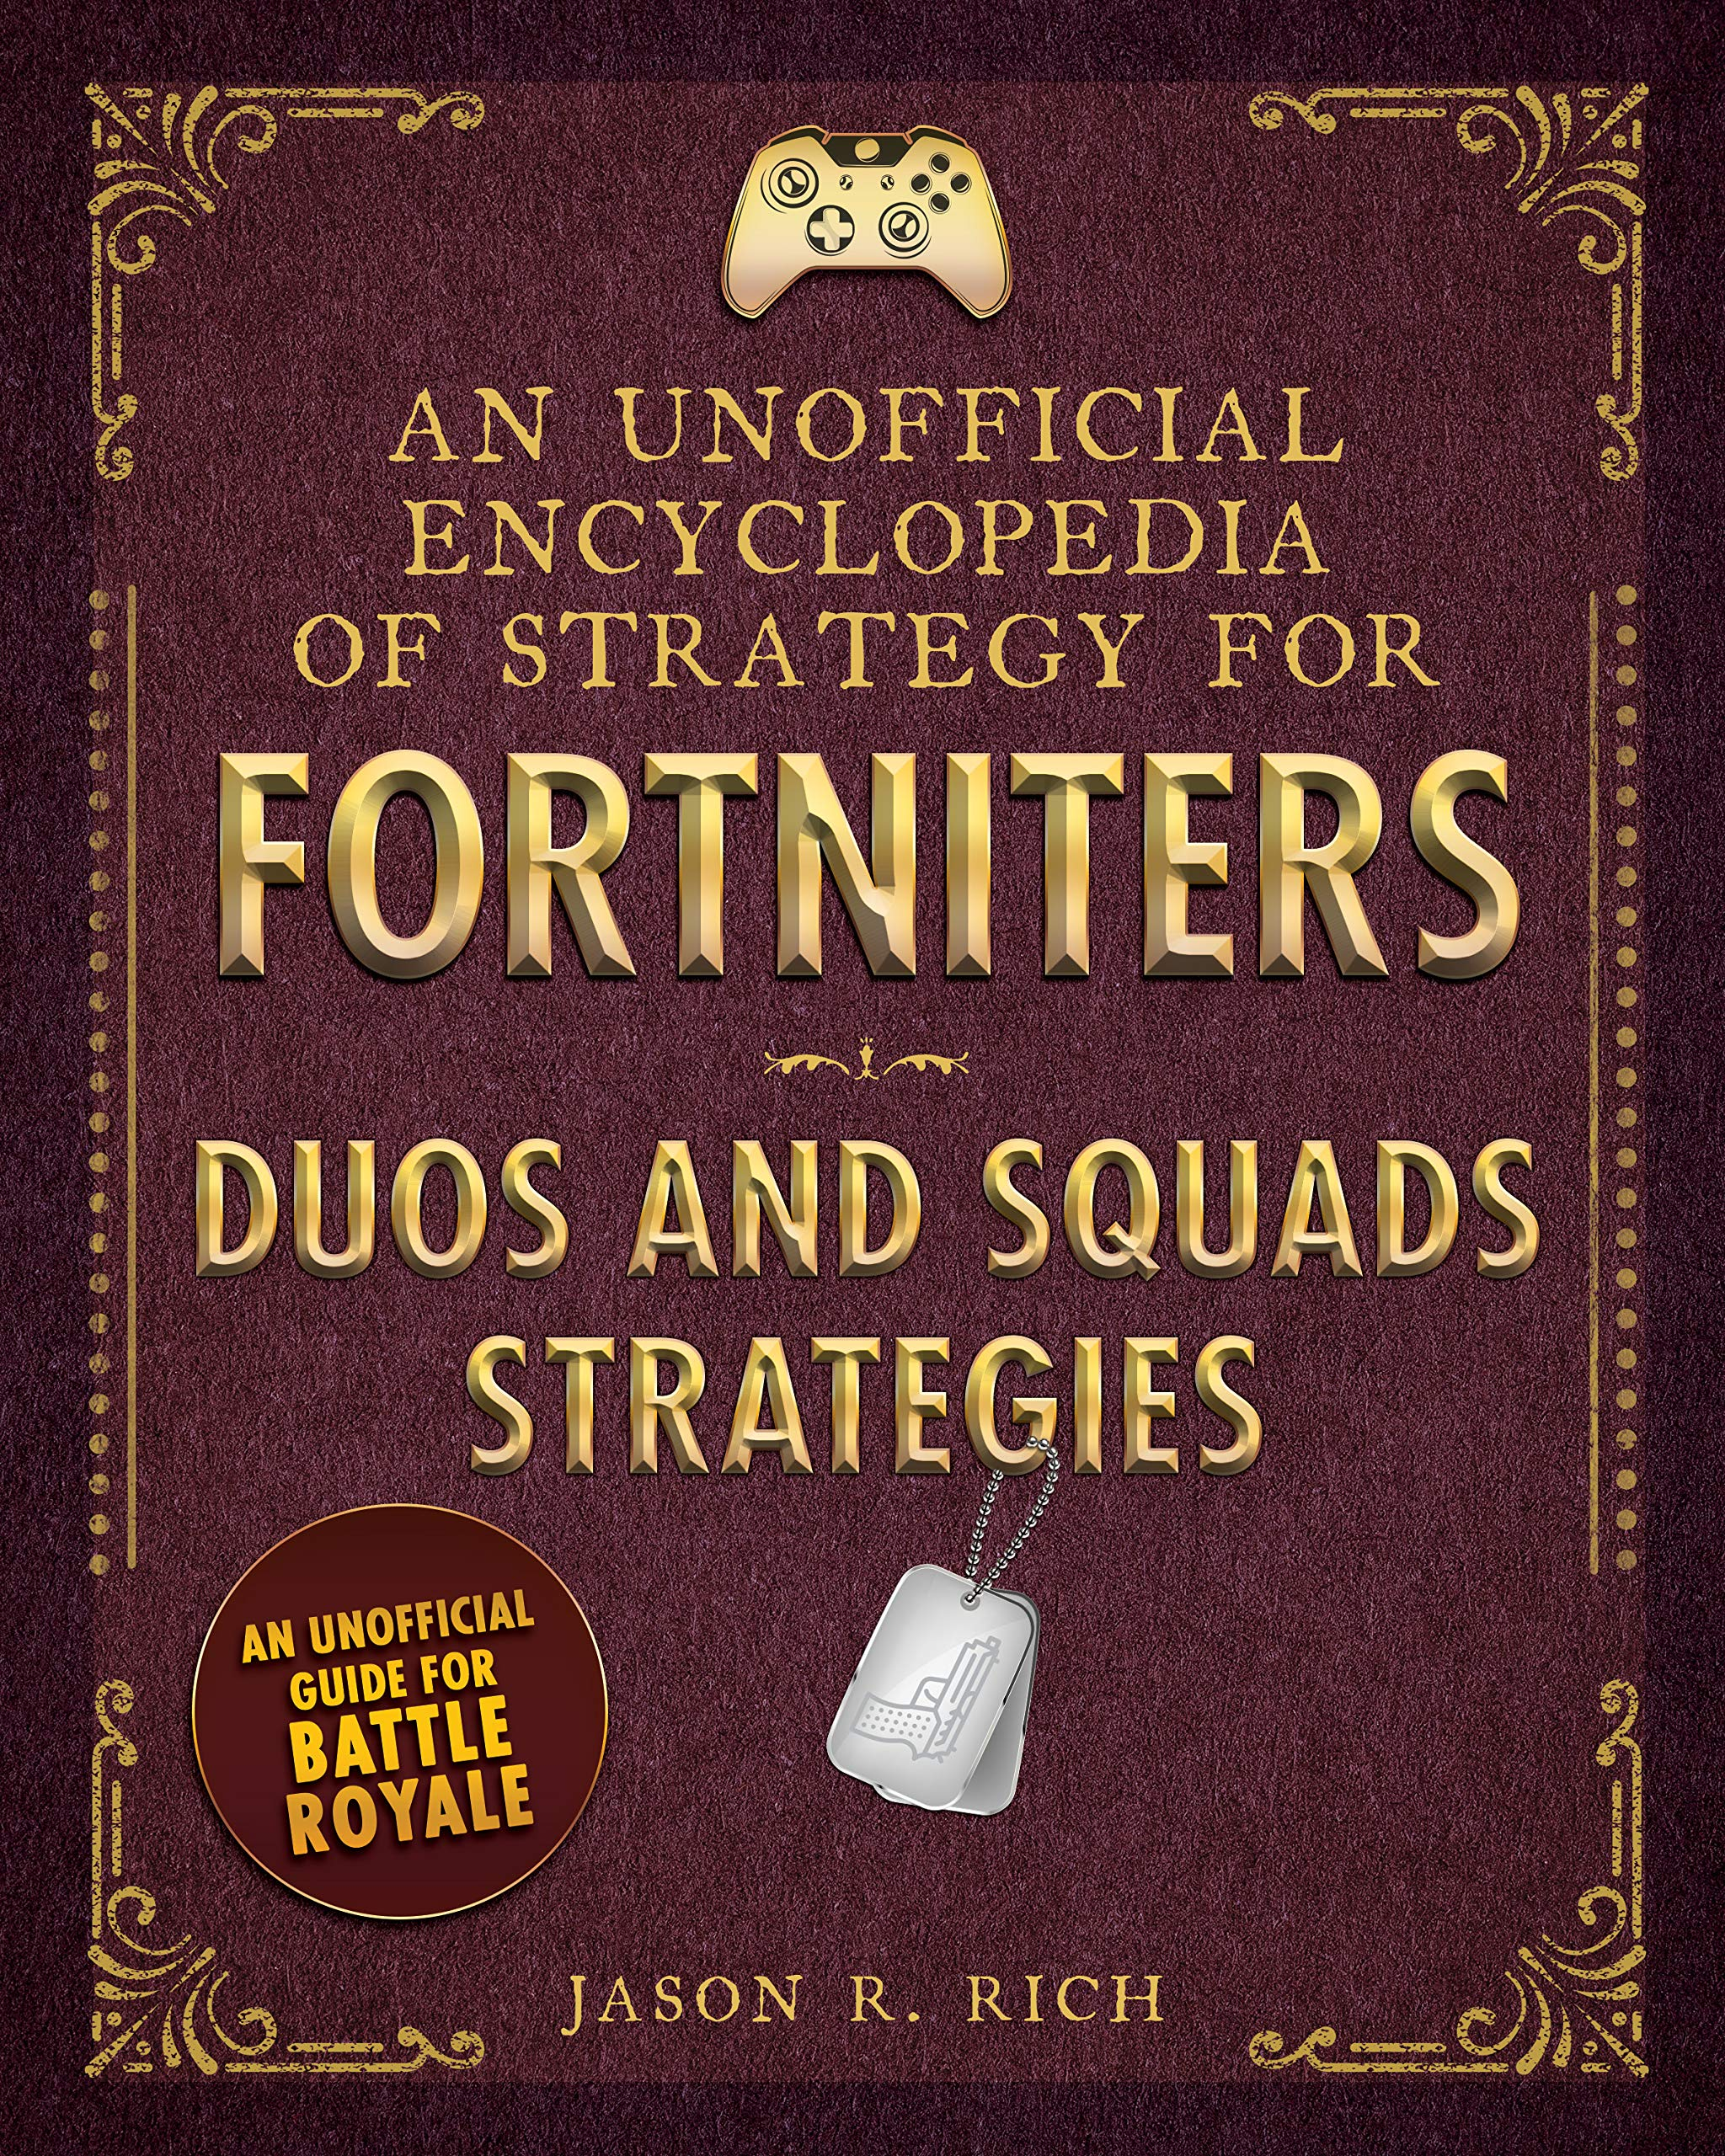 Read Online An Unofficial Encyclopedia of Strategy for Fortniters: Duos and Squads Strategies (Encyclopedia for Fortniters) PDF